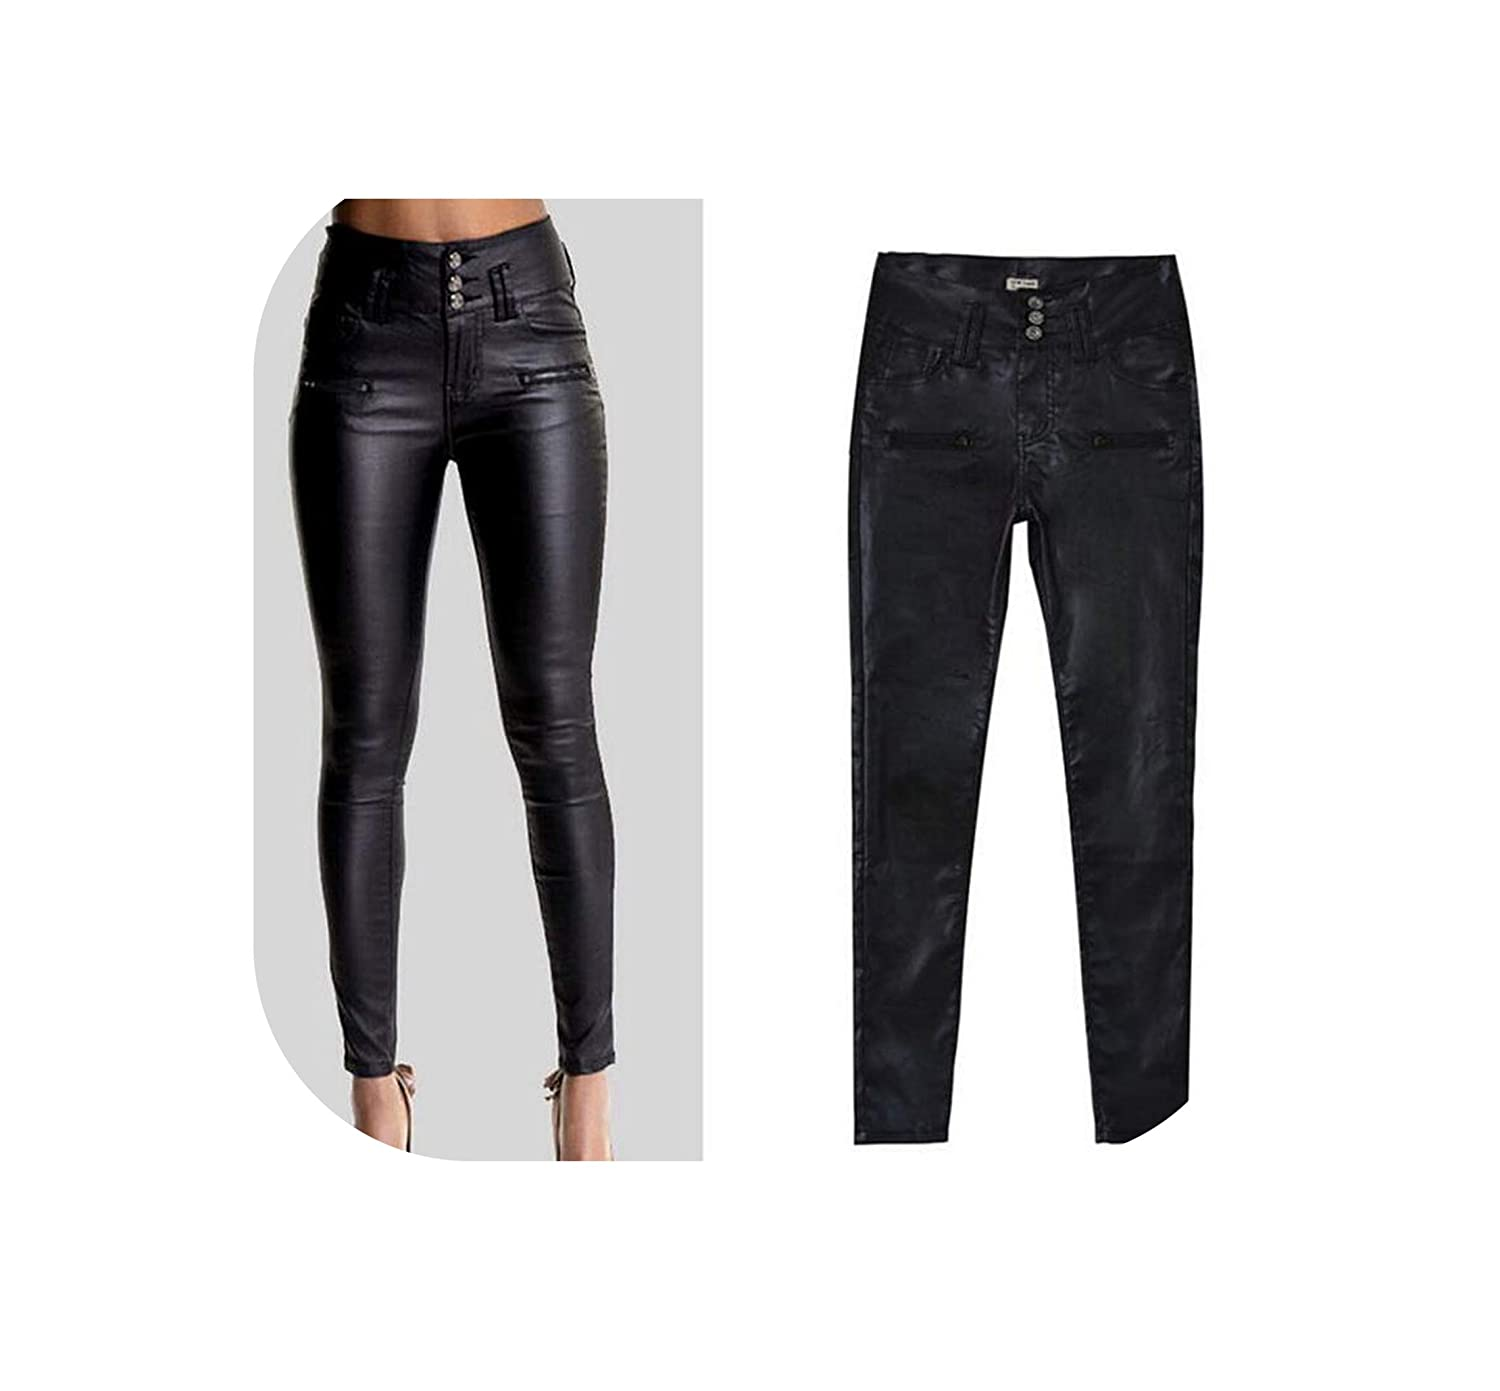 Black Winter Elegant Ladies PU Leather Leggings Wild Slim Pencil Trousers feet Leather Pants,